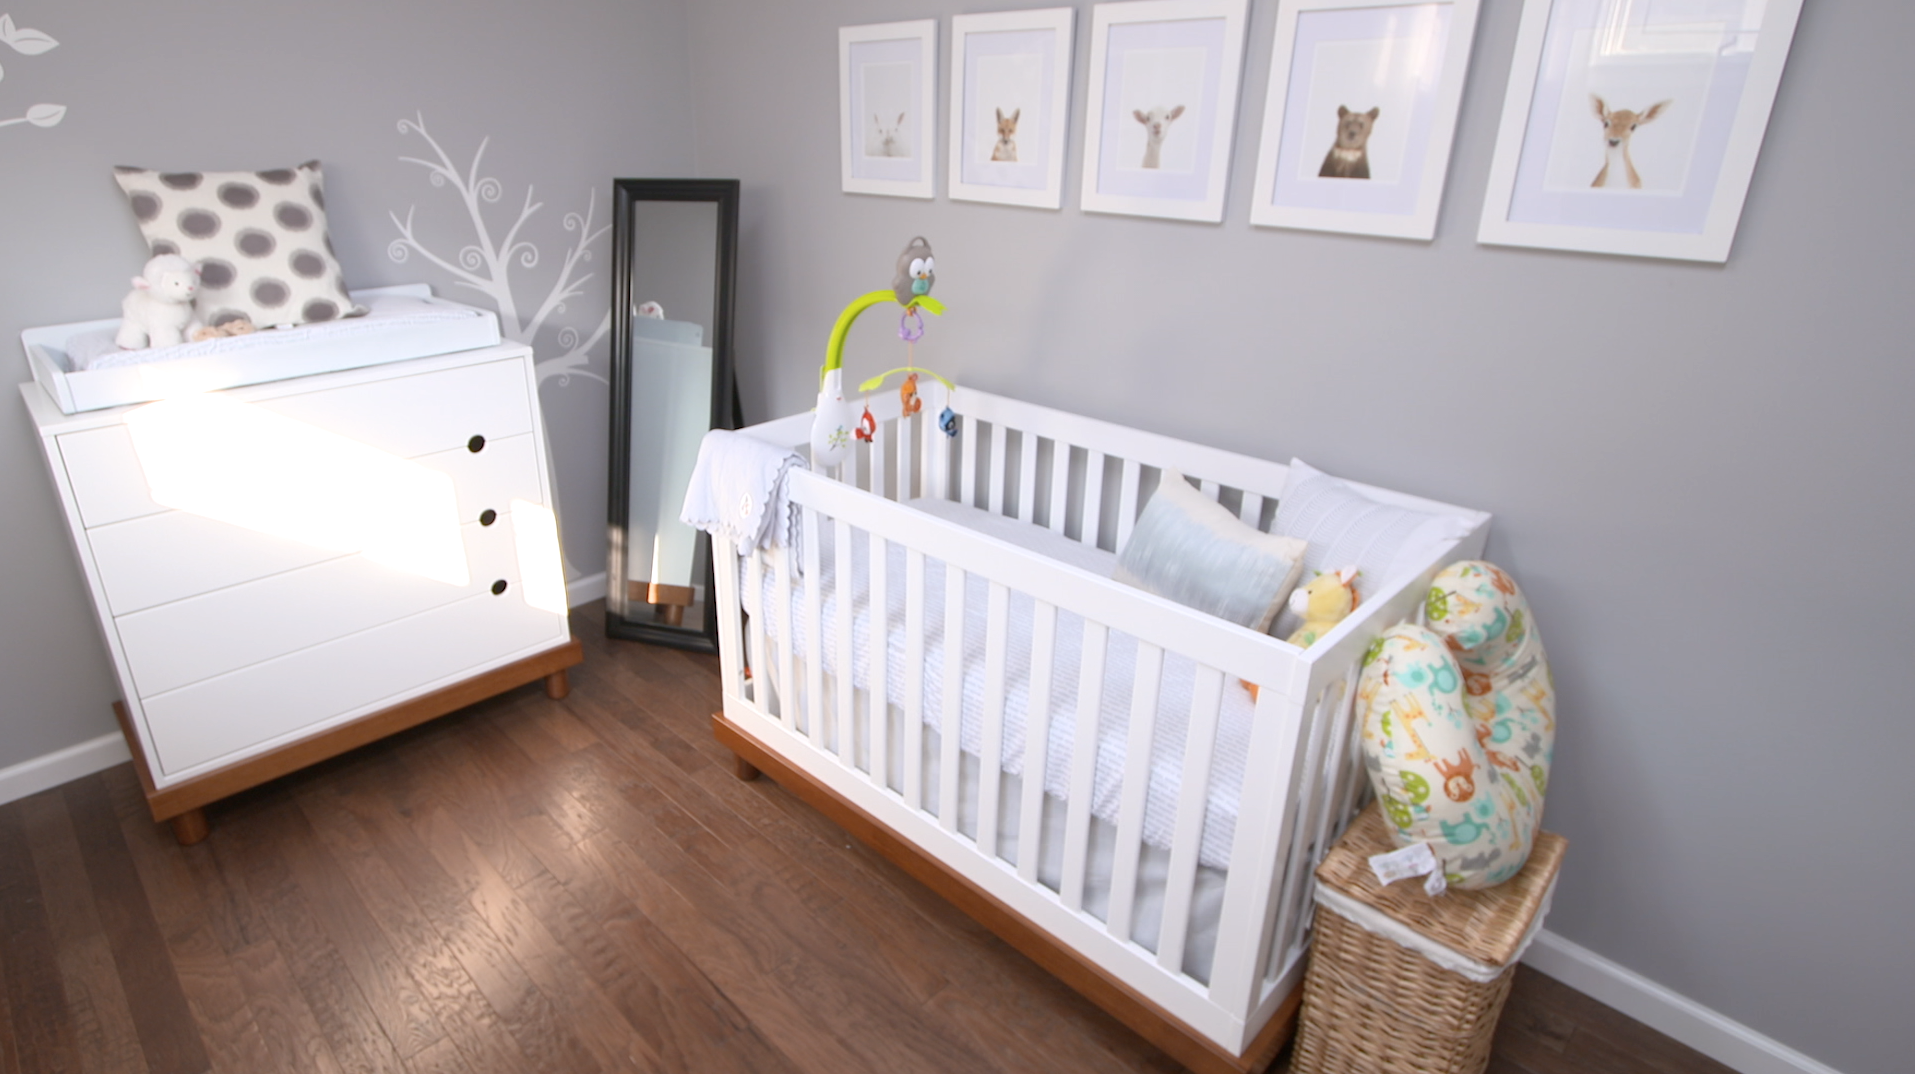 Must see before and after nursery makeover video for Baby room decor ideas unisex